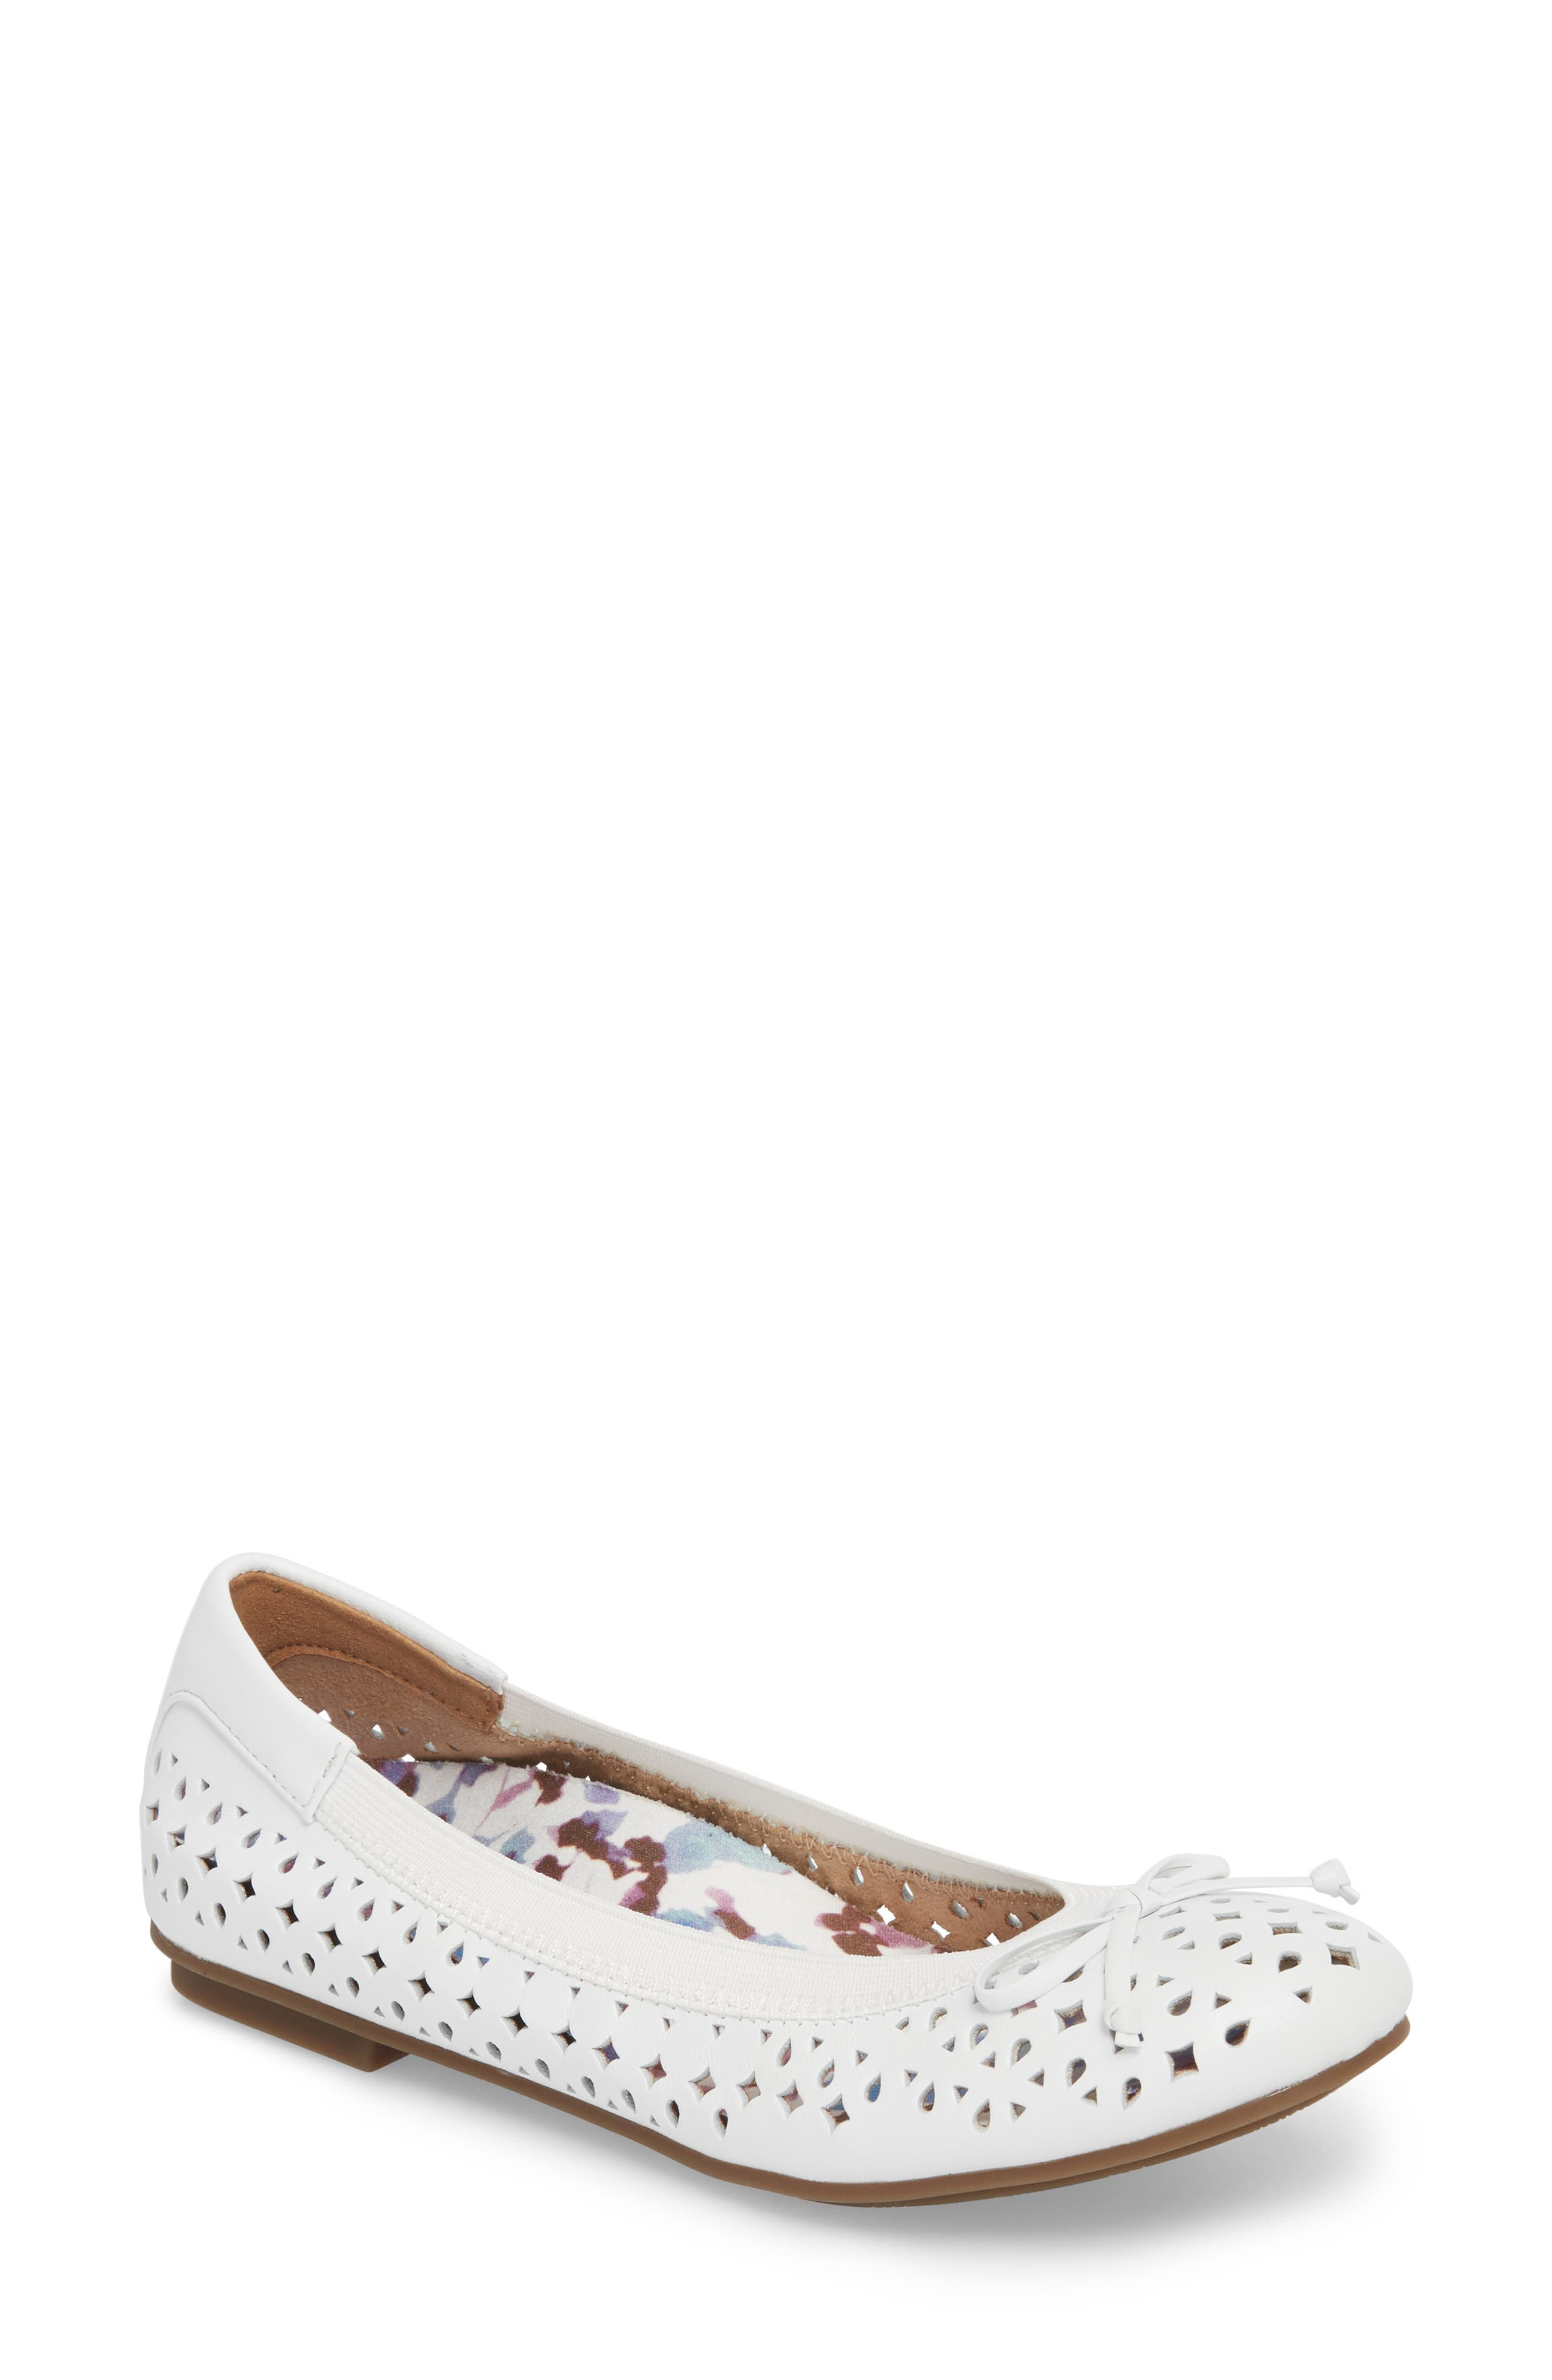 'Surin' Perforated Ballet Flat,                             Main thumbnail 1, color,                             100